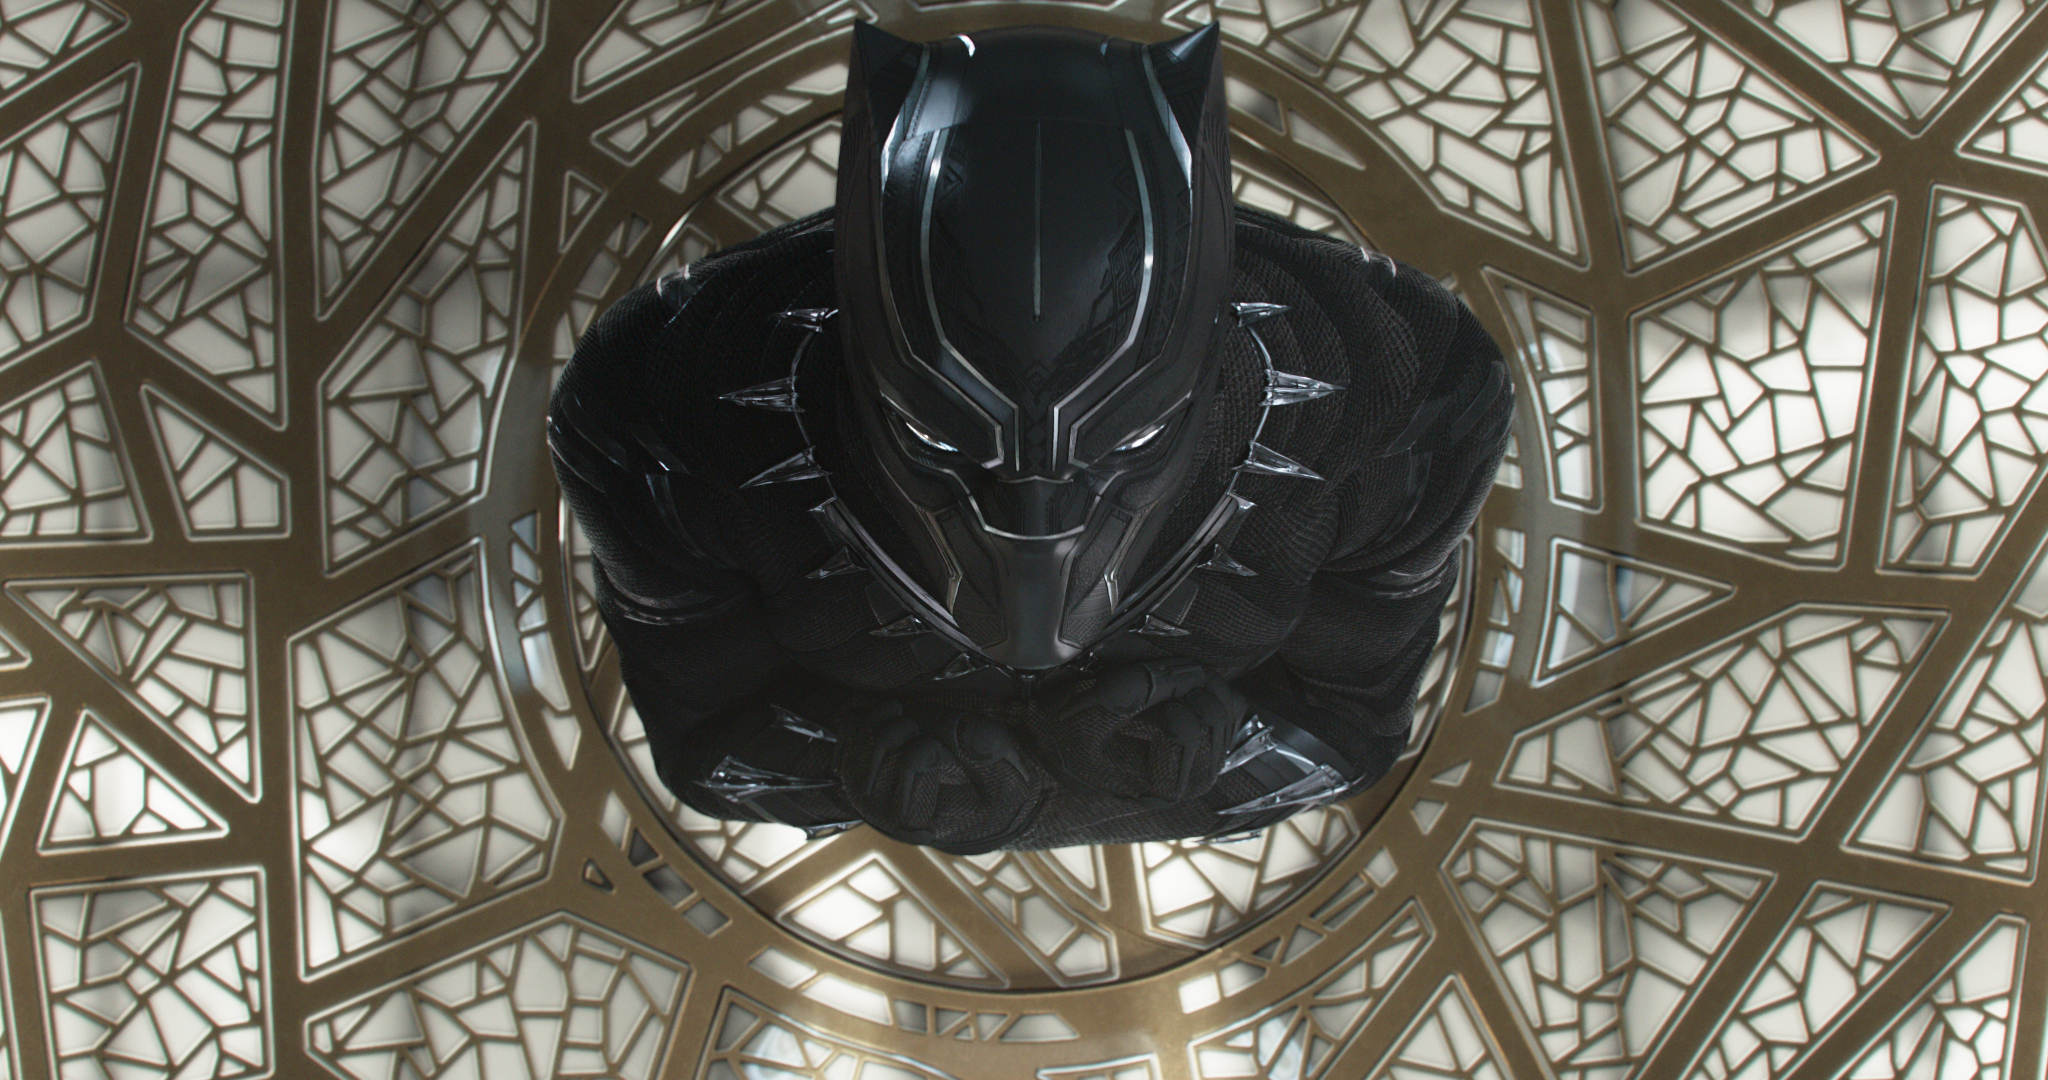 Black Panther Early Buzz: What the Critics Are Saying